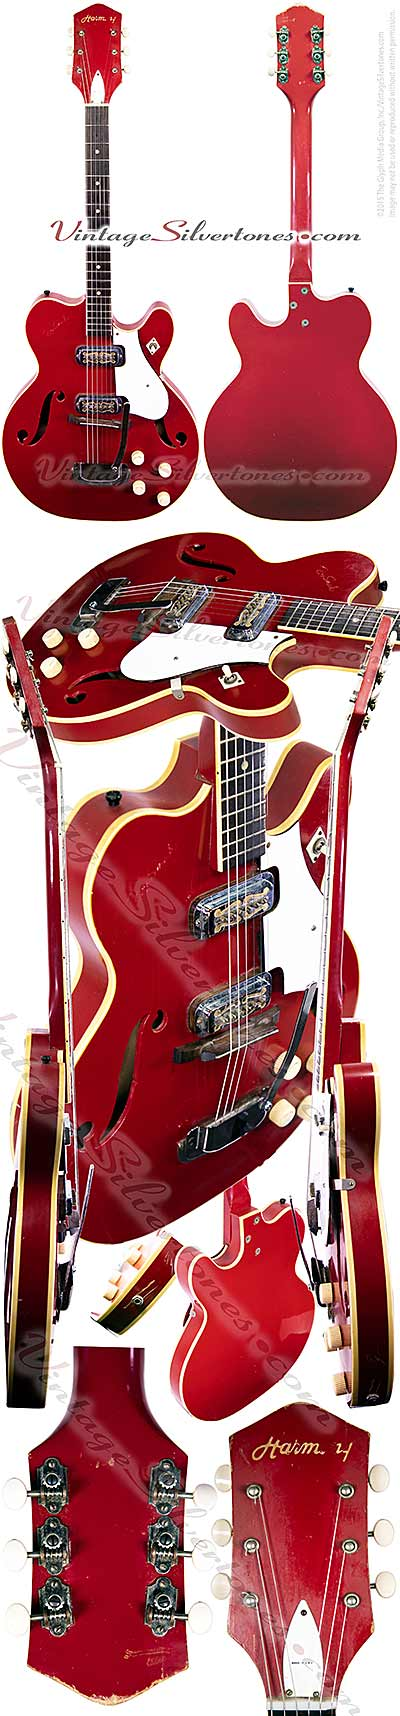 Harmony H73 made by Harmony in Chicago, two pickup, electric guitar, hollow body, manderin red white binding, maple body, made in 1966